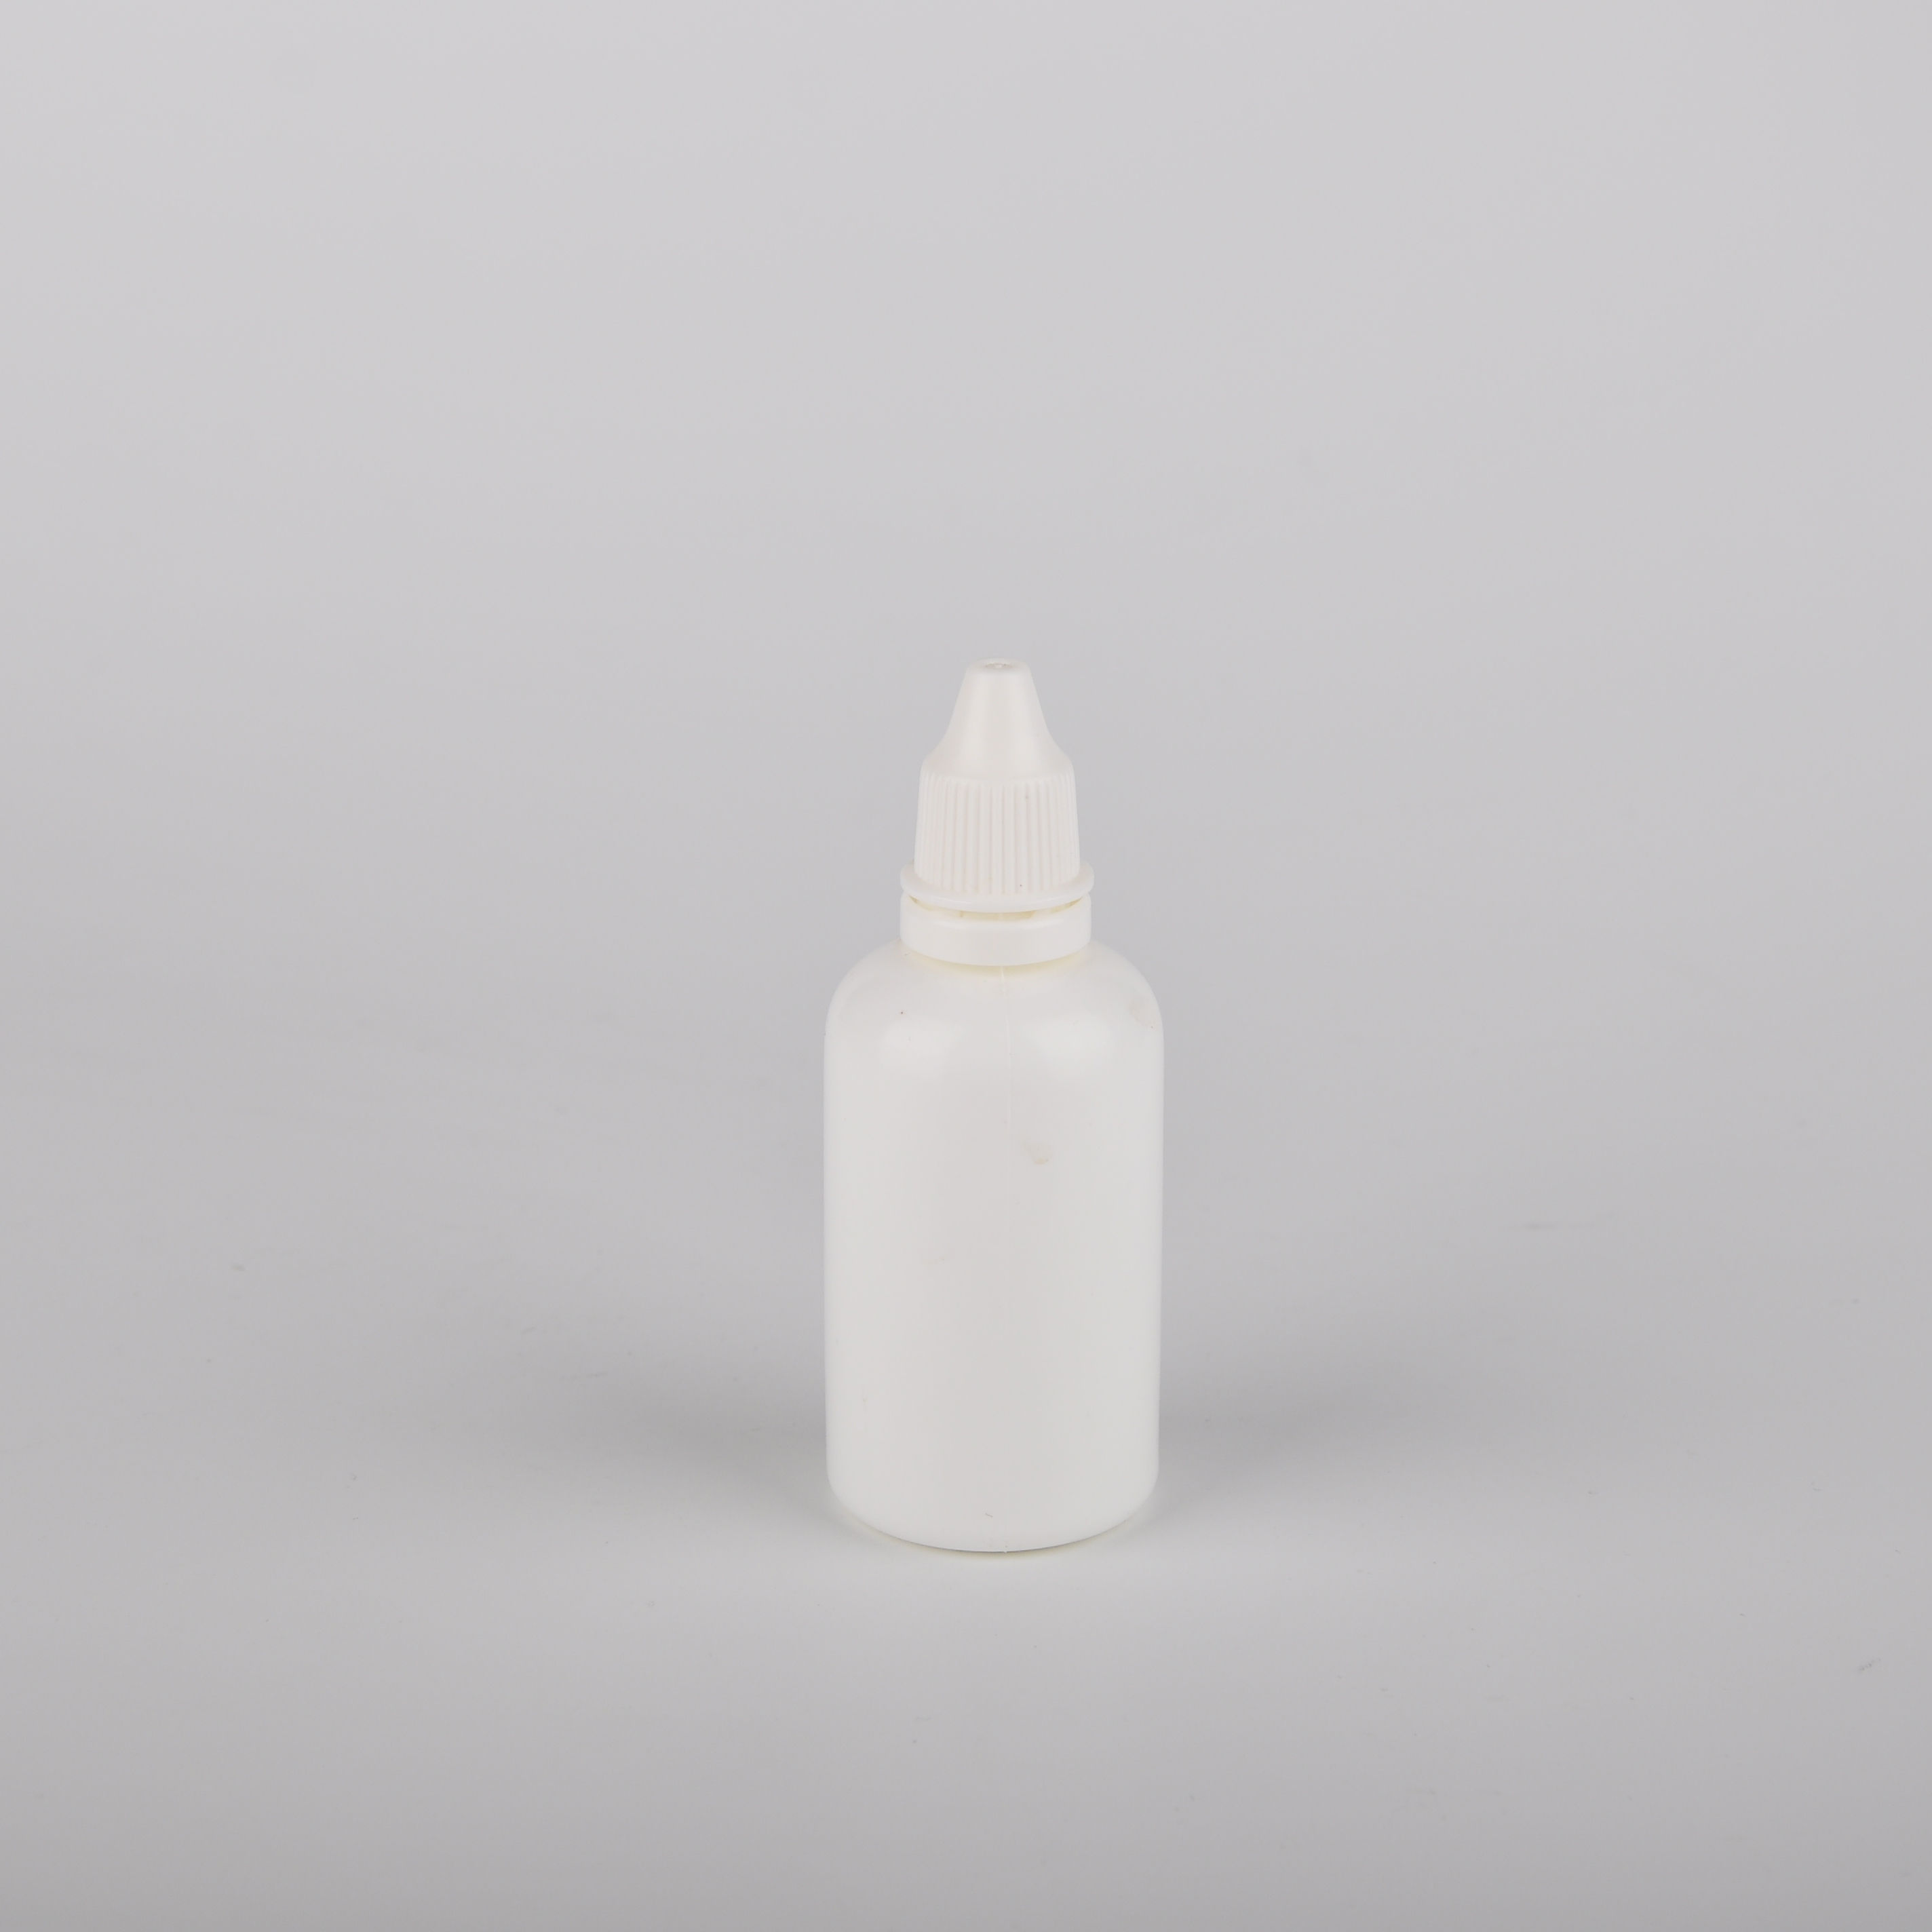 Wholesale White Empty Bottle Dropper Cosmetic Hot Package Eye Dropper Bottle